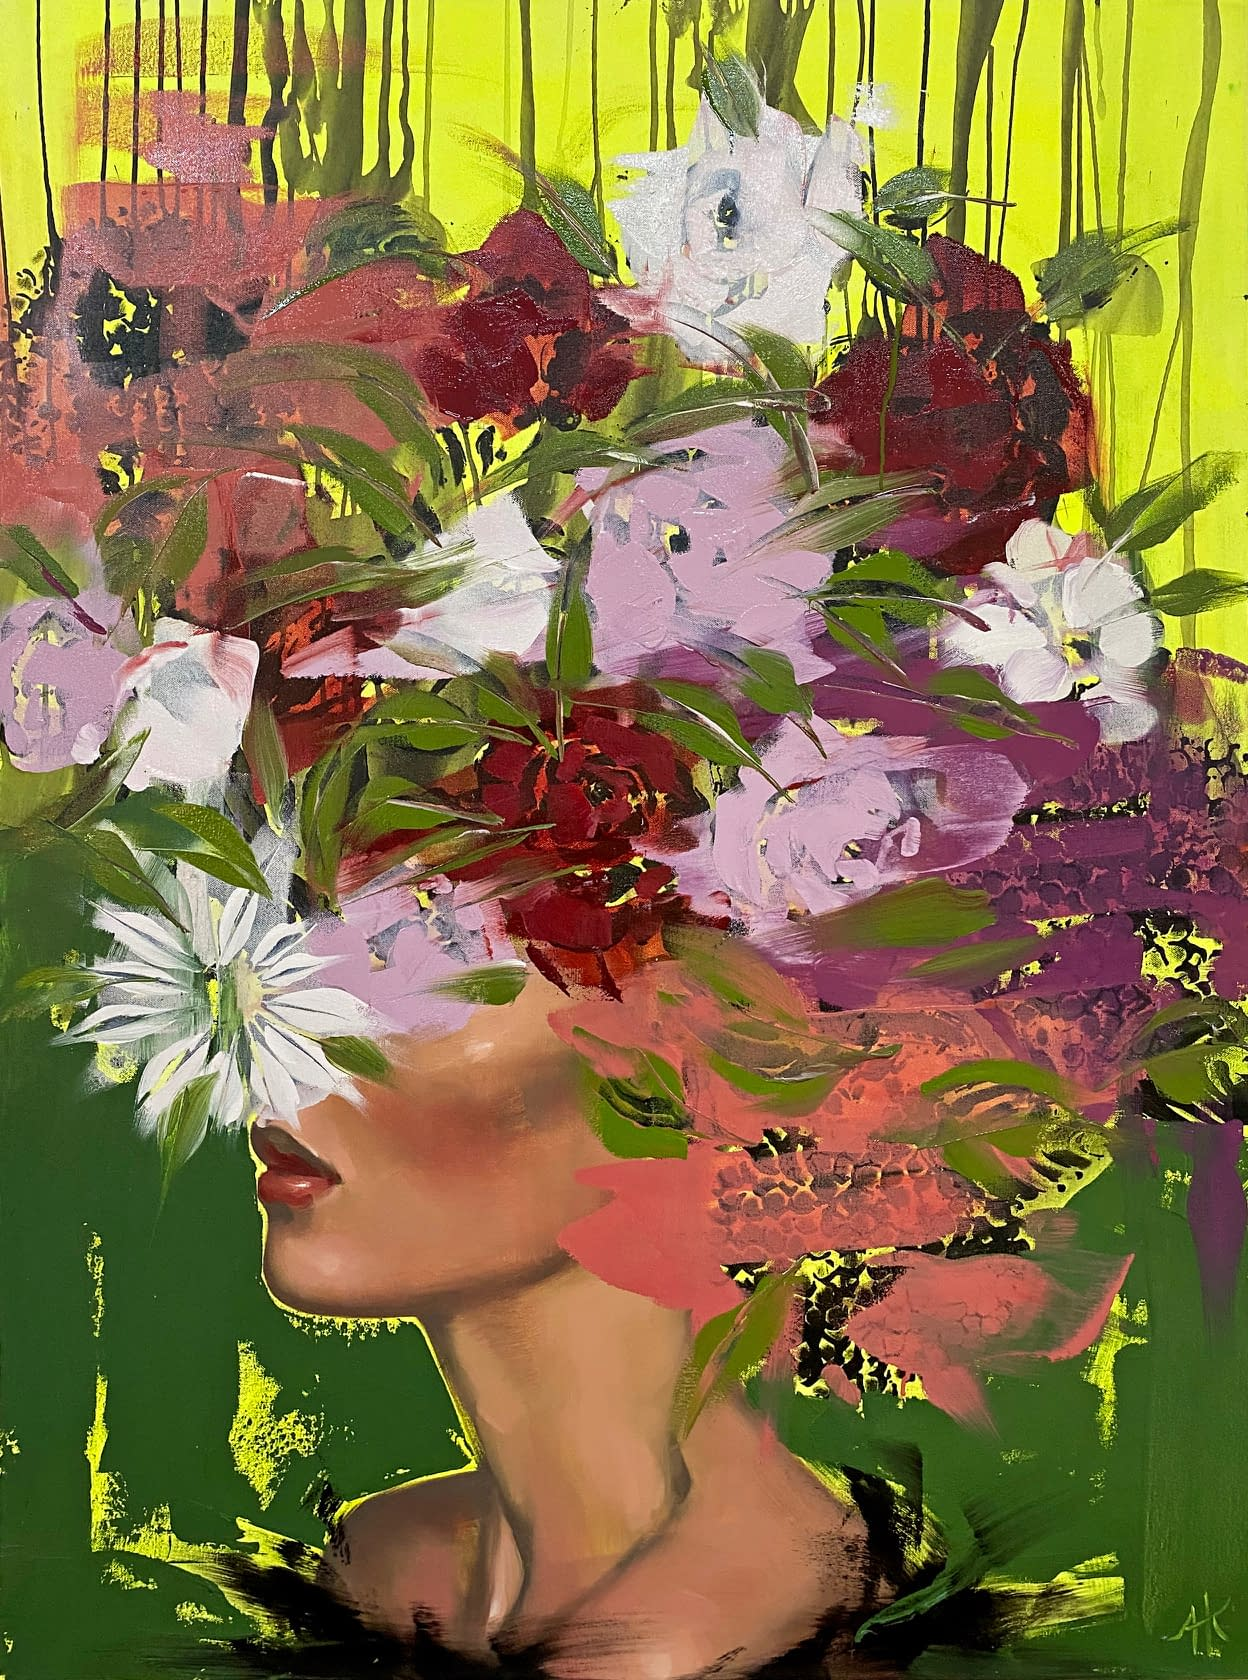 anna kincaide joanneartman gallery love forever oil on canvas figurative abstract floral